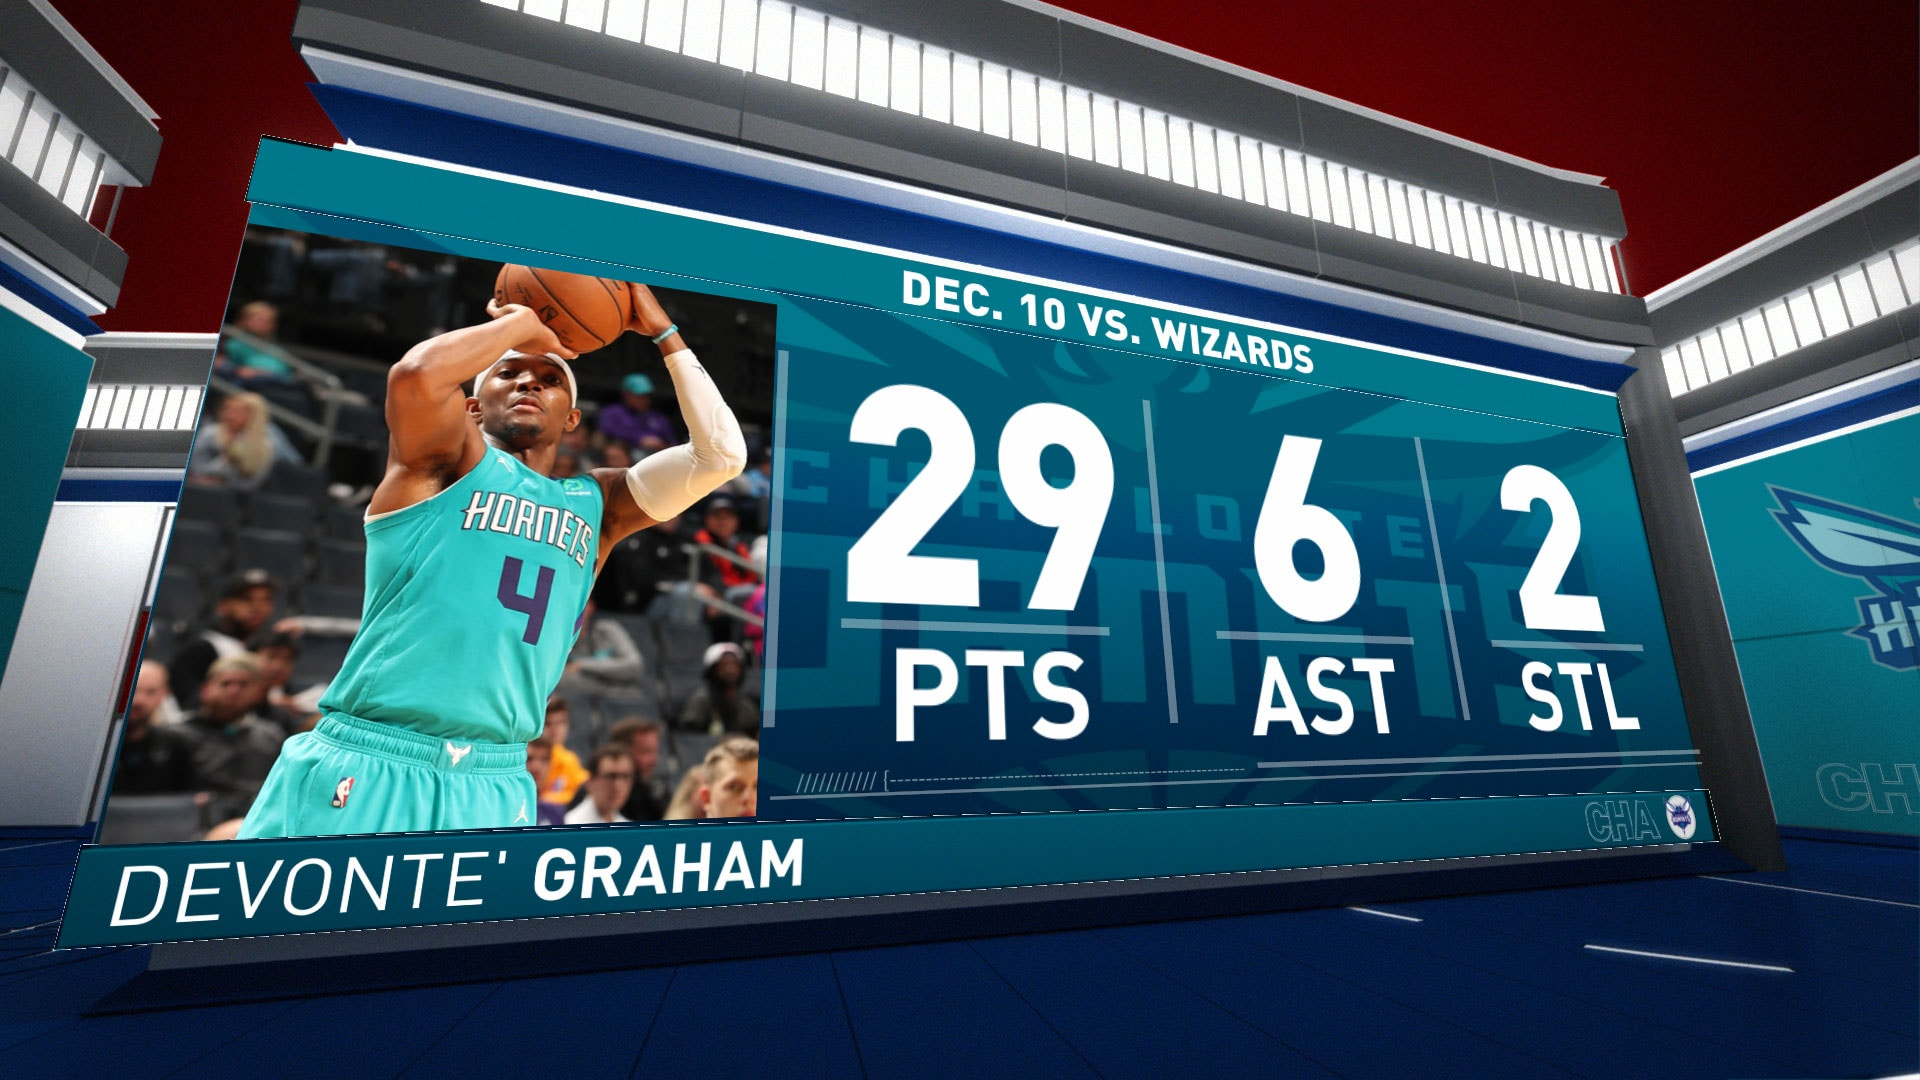 Highlights: Devonte' Graham | Wizards vs. Hornets